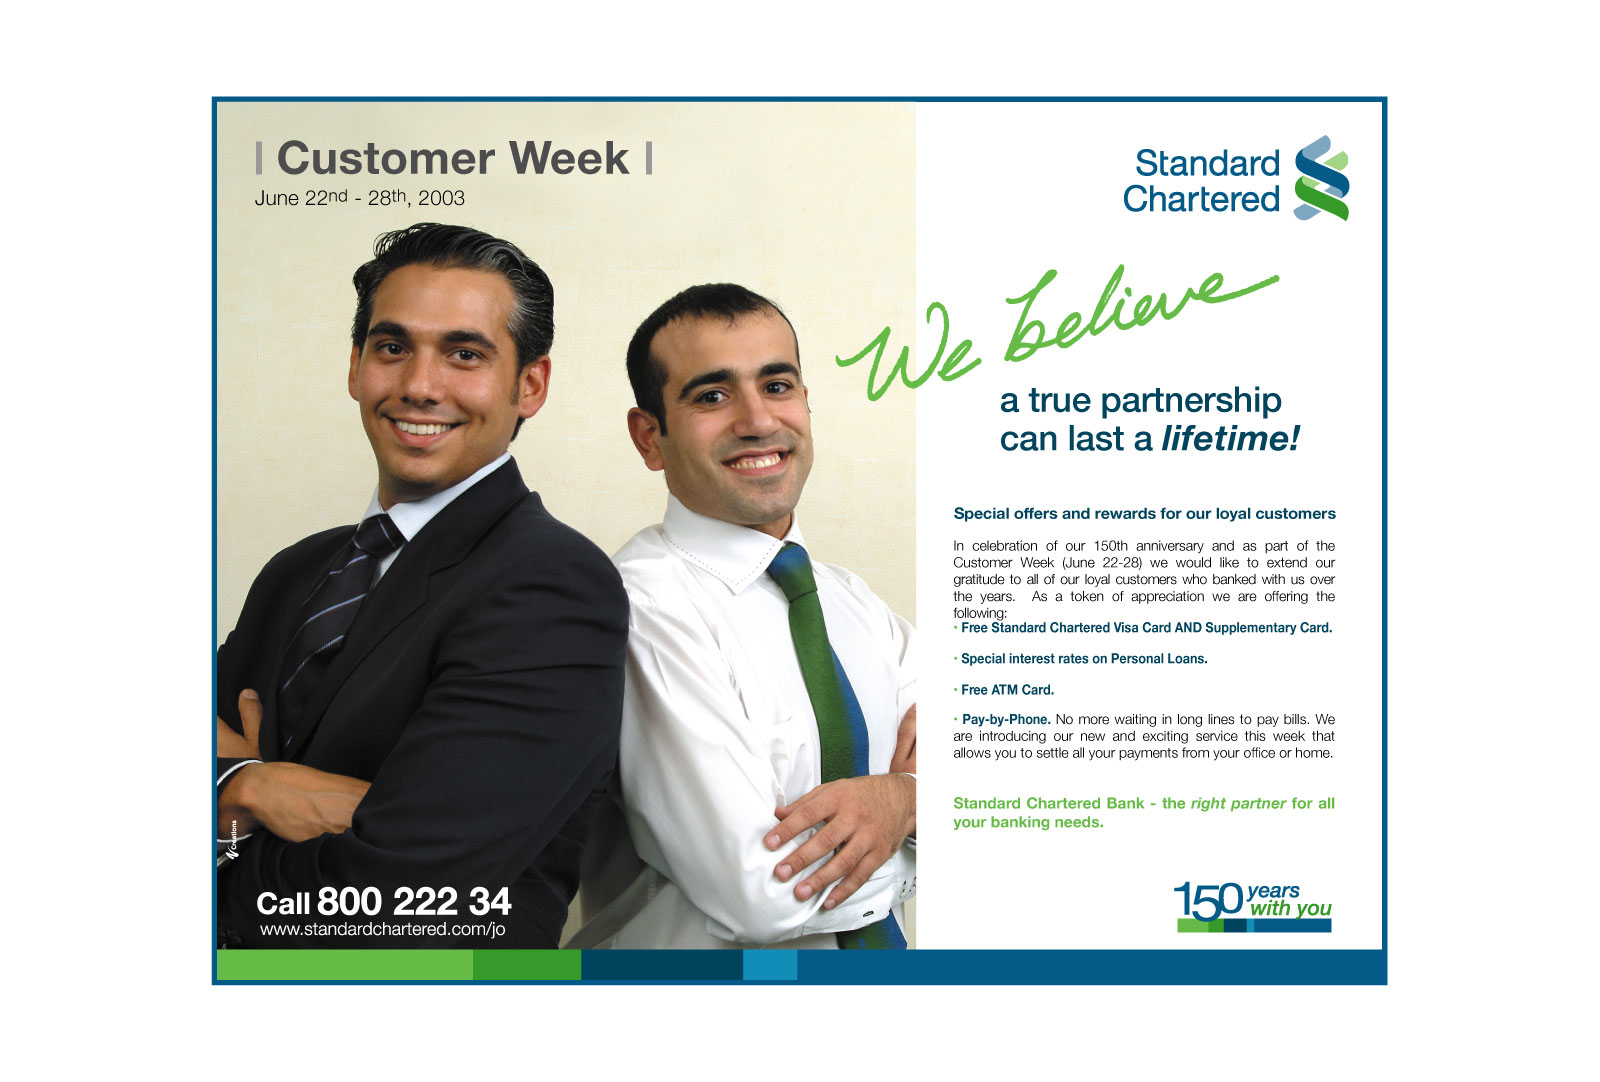 Standard Chartered Bank Ad Campaign Customer Week